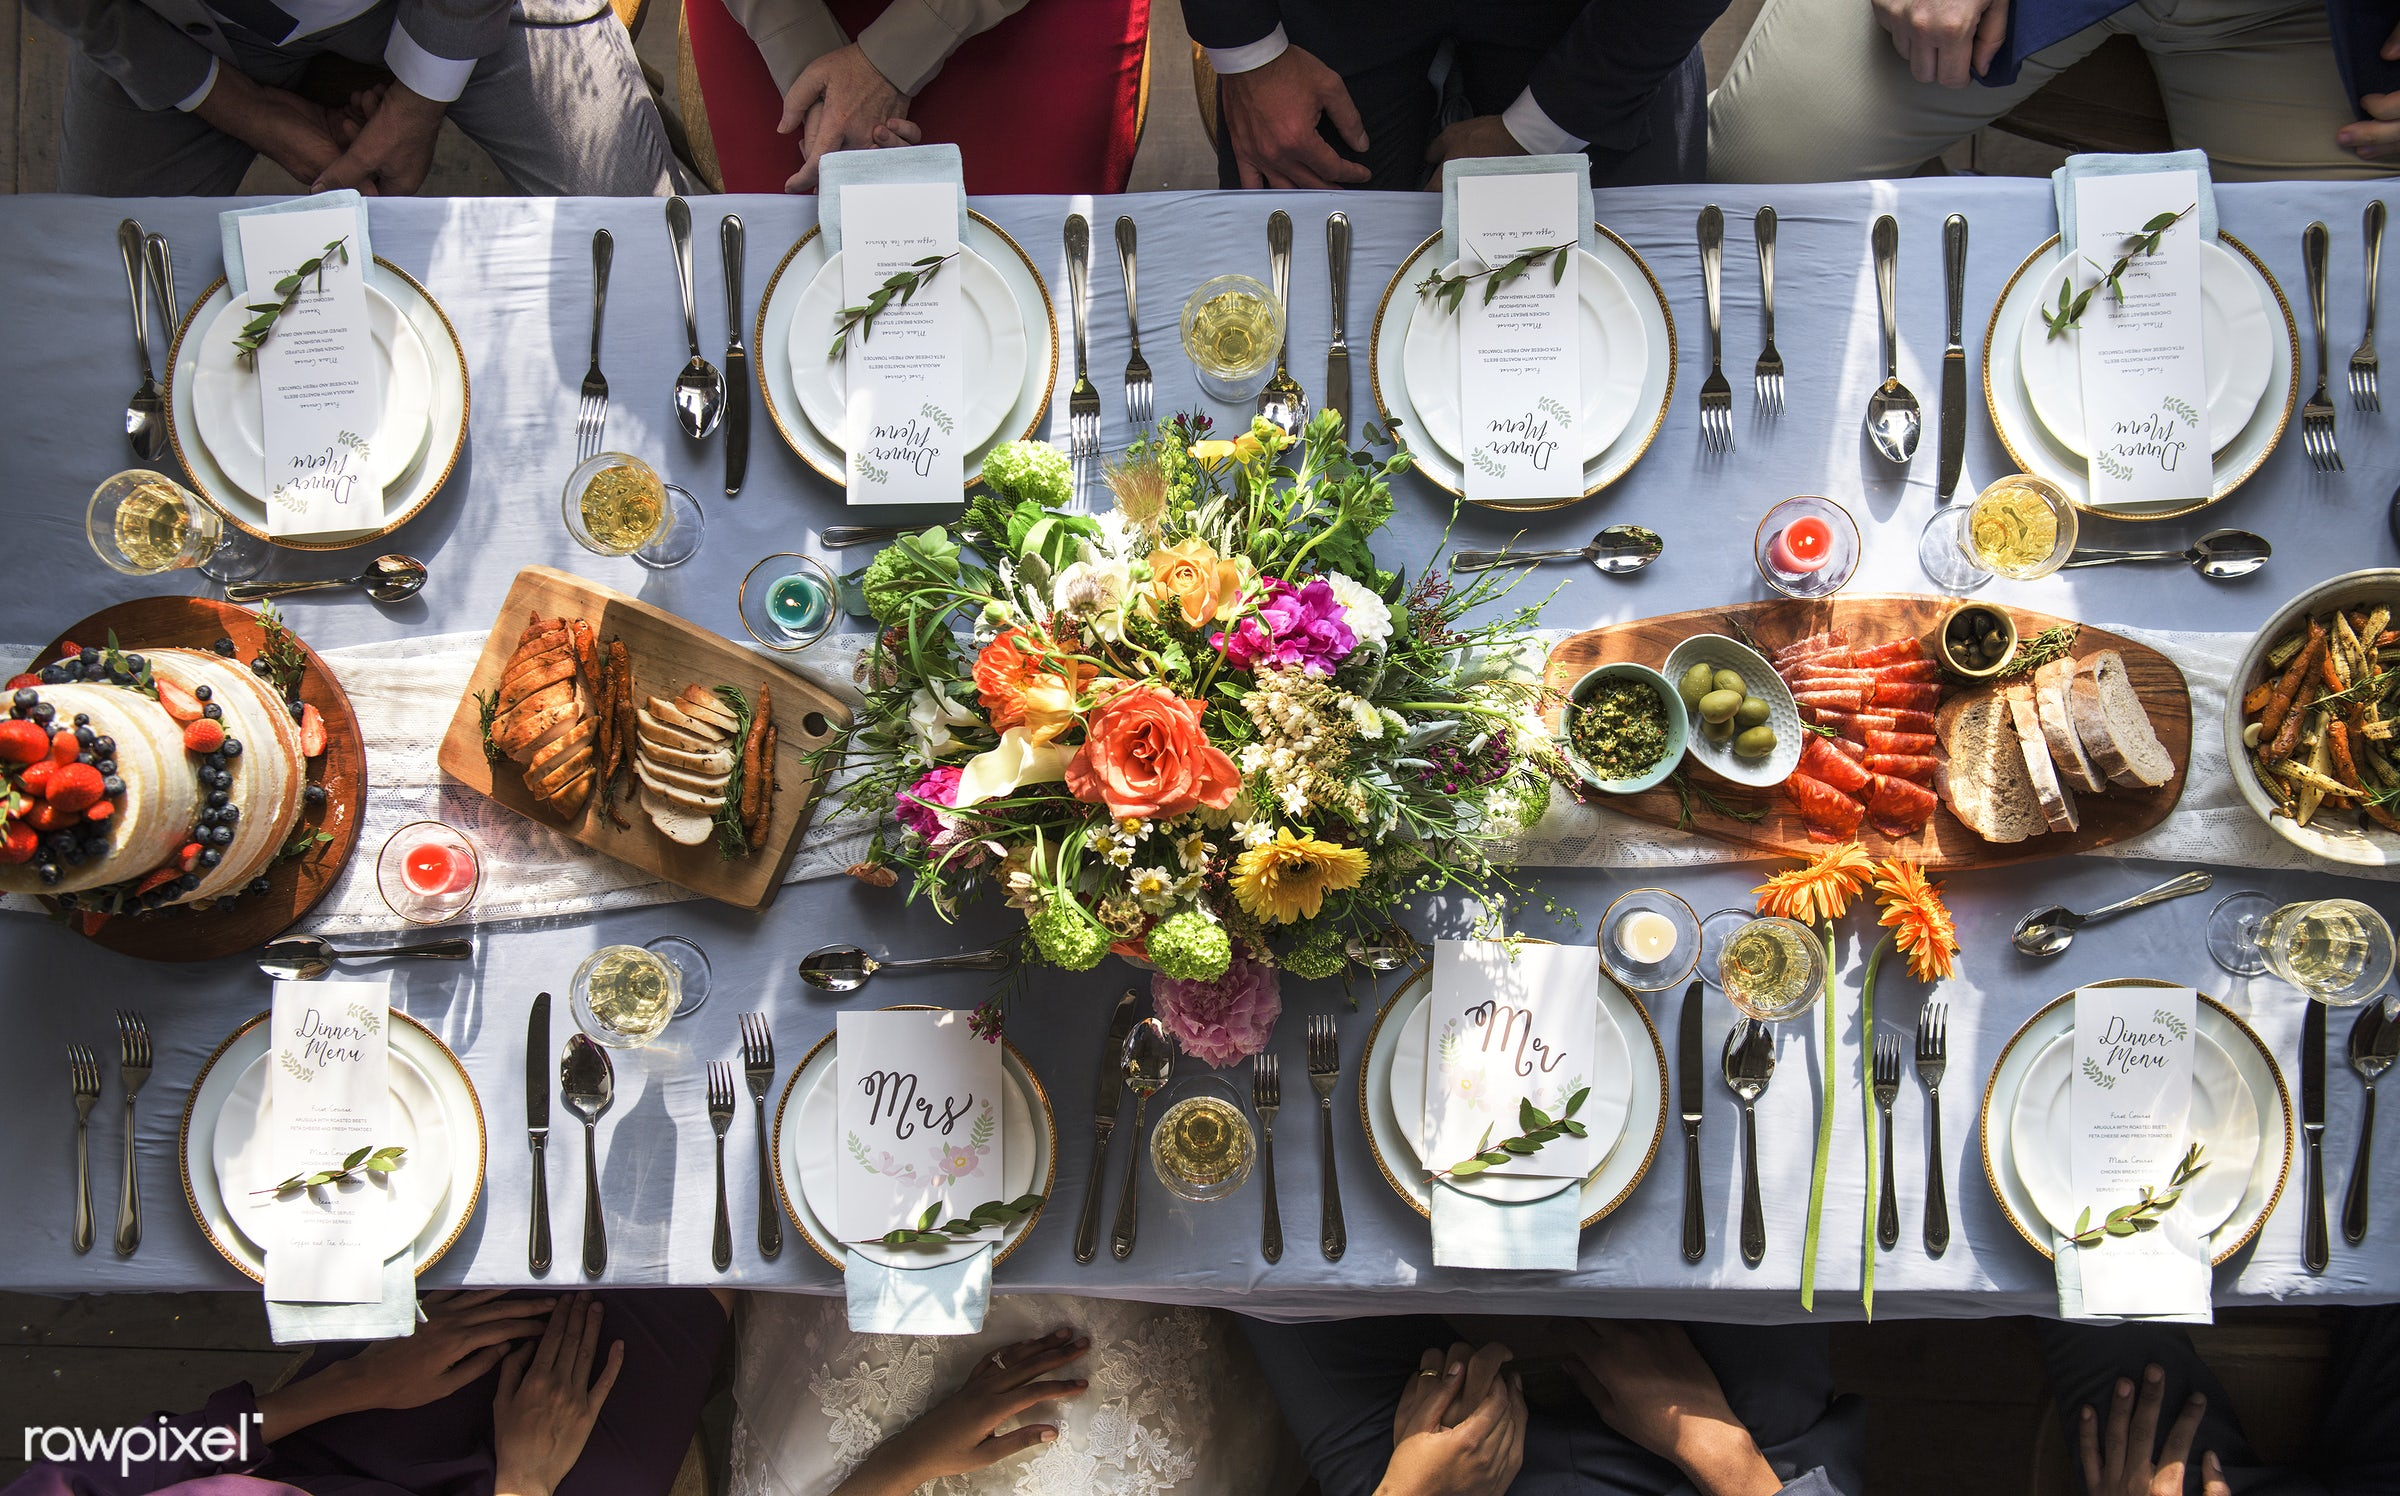 blue cloth, bouquet, detail, top view, flatlay, paper, occasion, guests, cutlery, party, restaurant, people, together,...